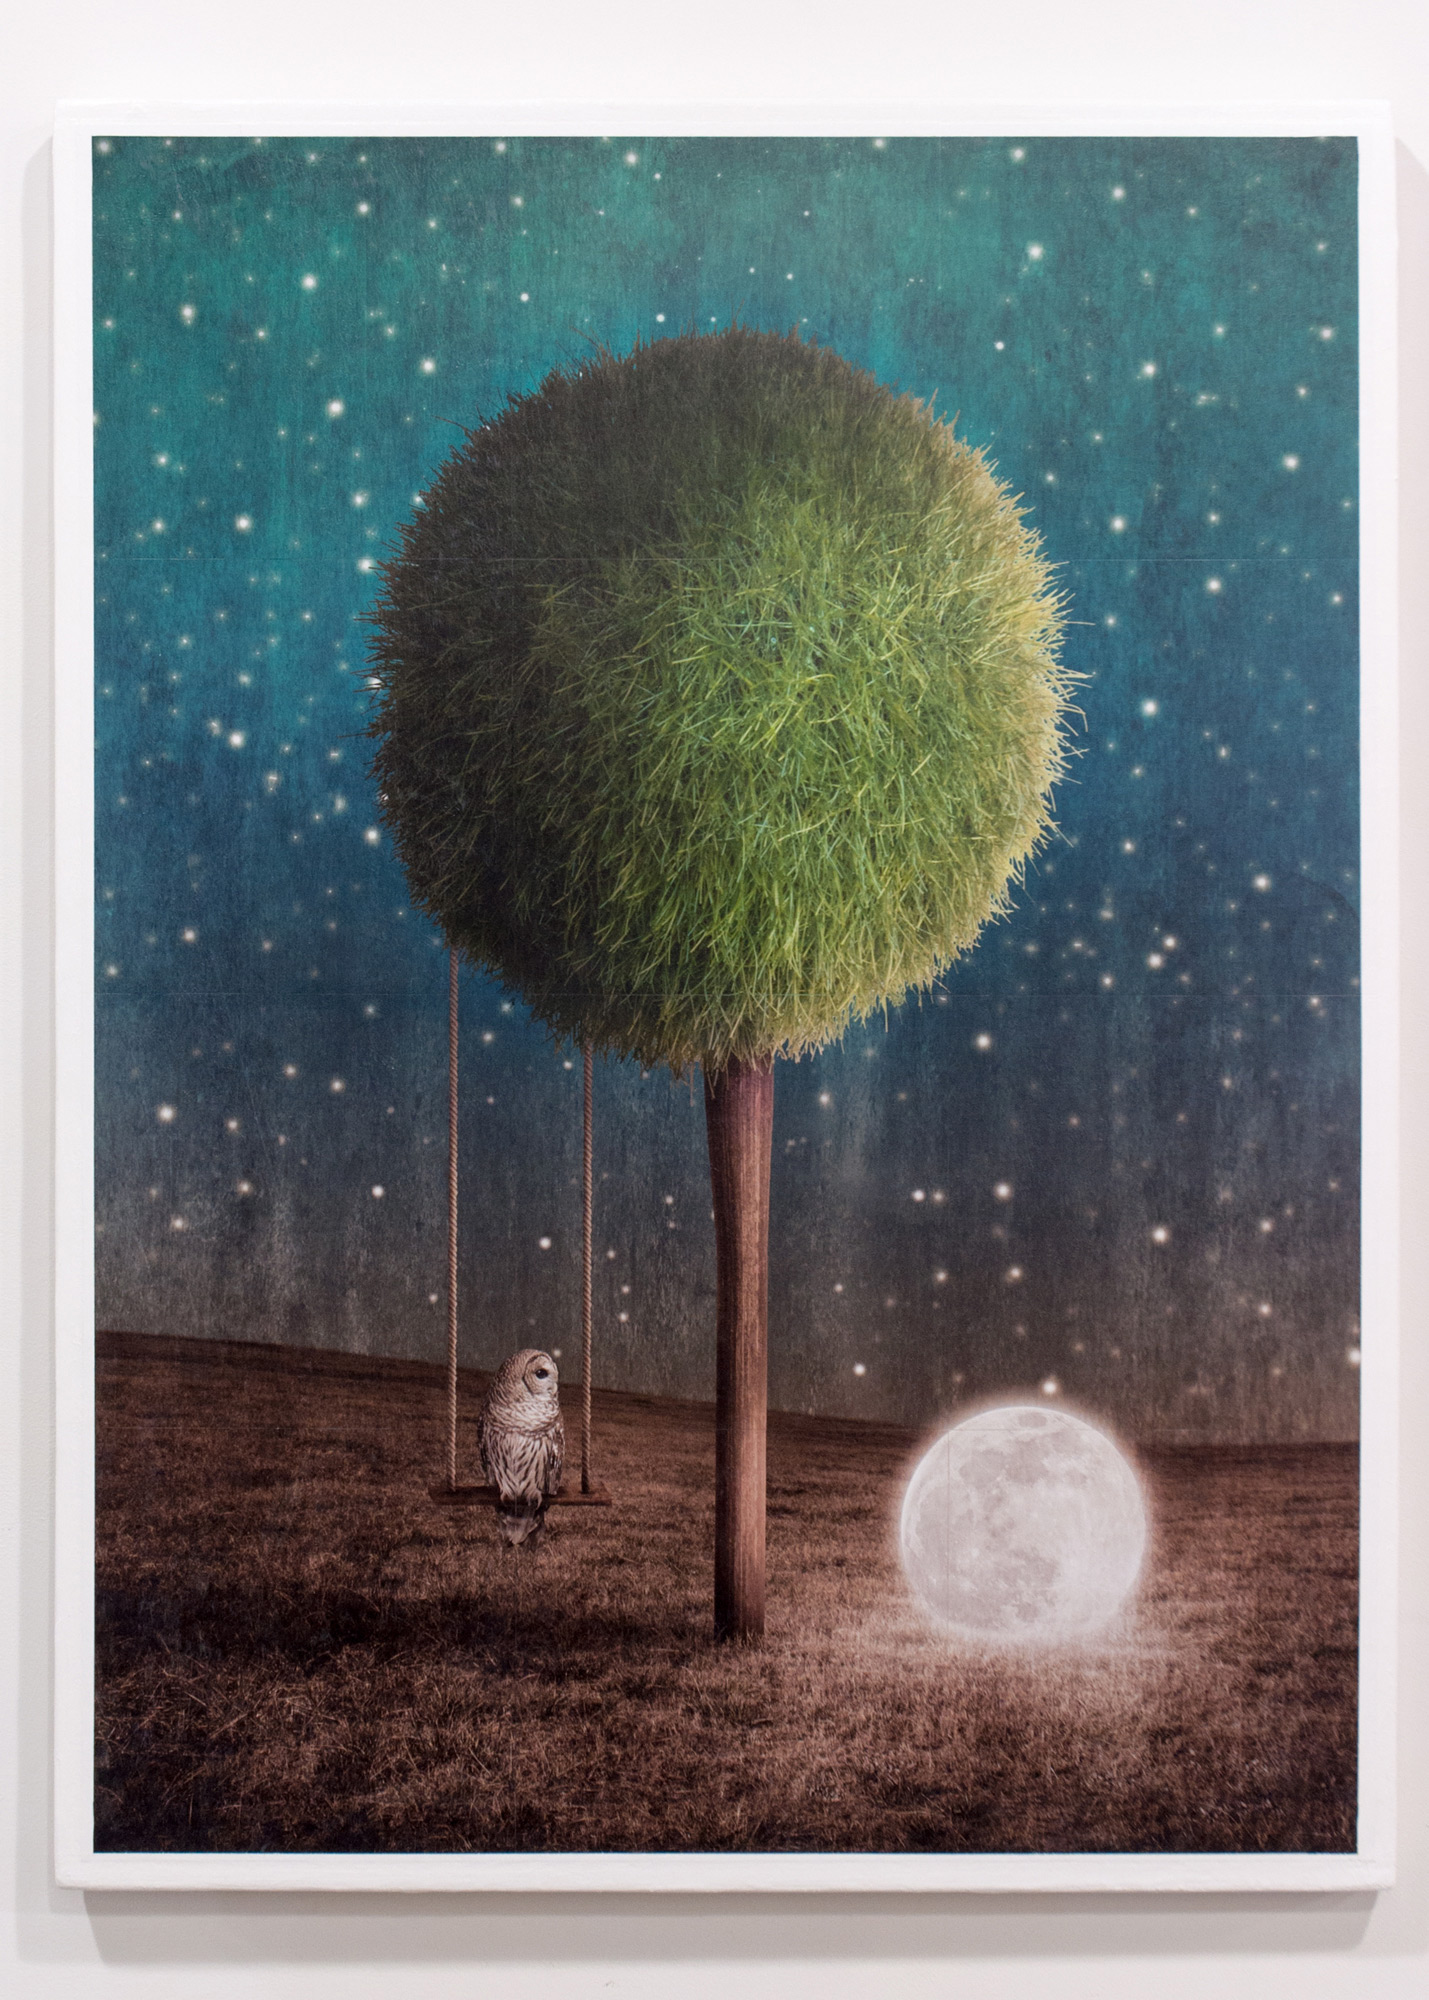 Tappy And The Moon gridded photograph on panel with gel medium 33 x 49 inches GNO 215G